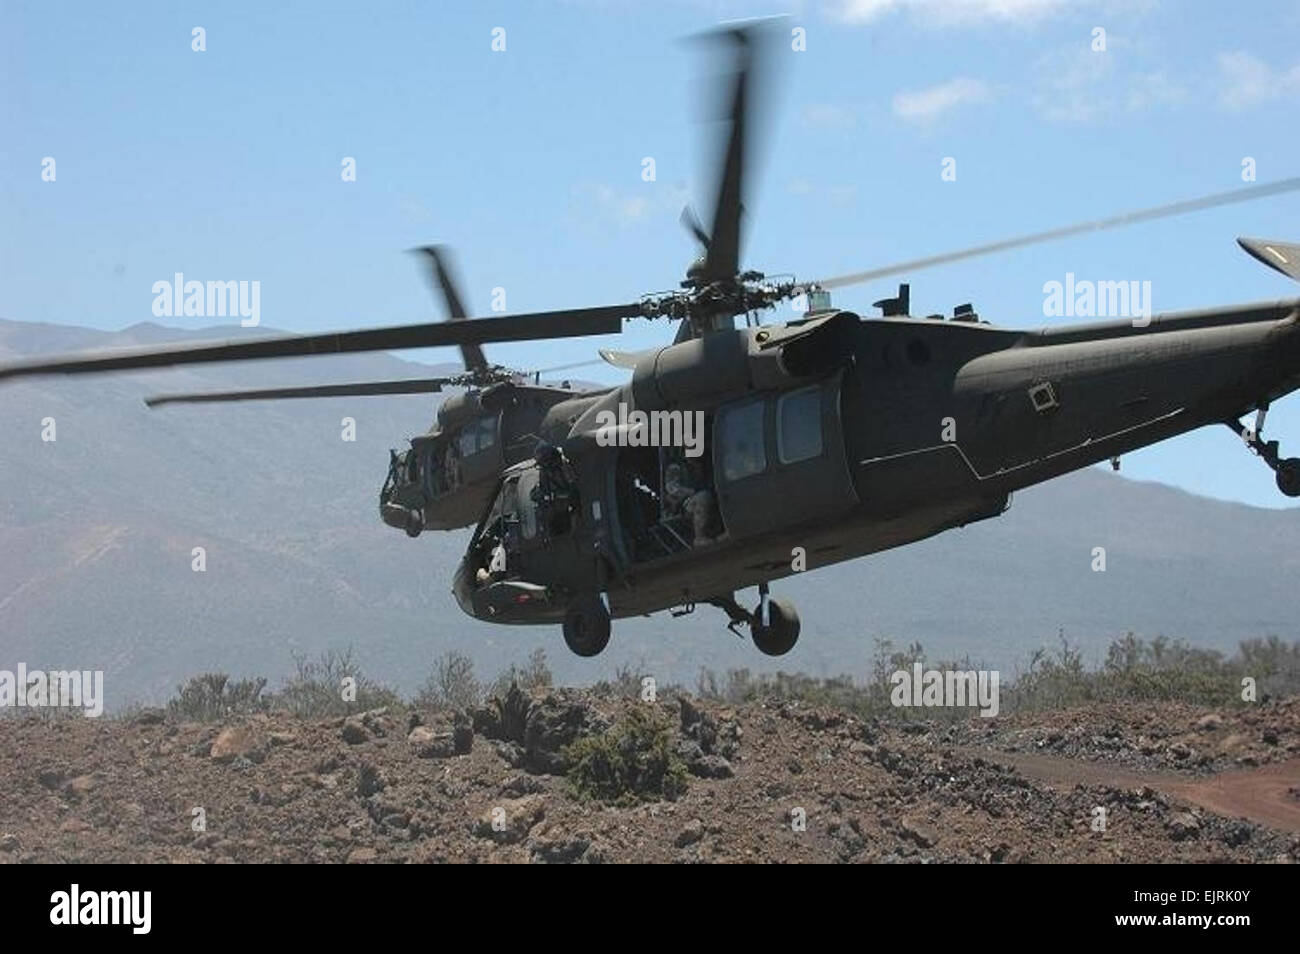 """Two UH-60L Blackhawk helicopters, flown by pilots from the 25th Combat Aviation Brigade's Task Force """"Diamond - Stock Image"""